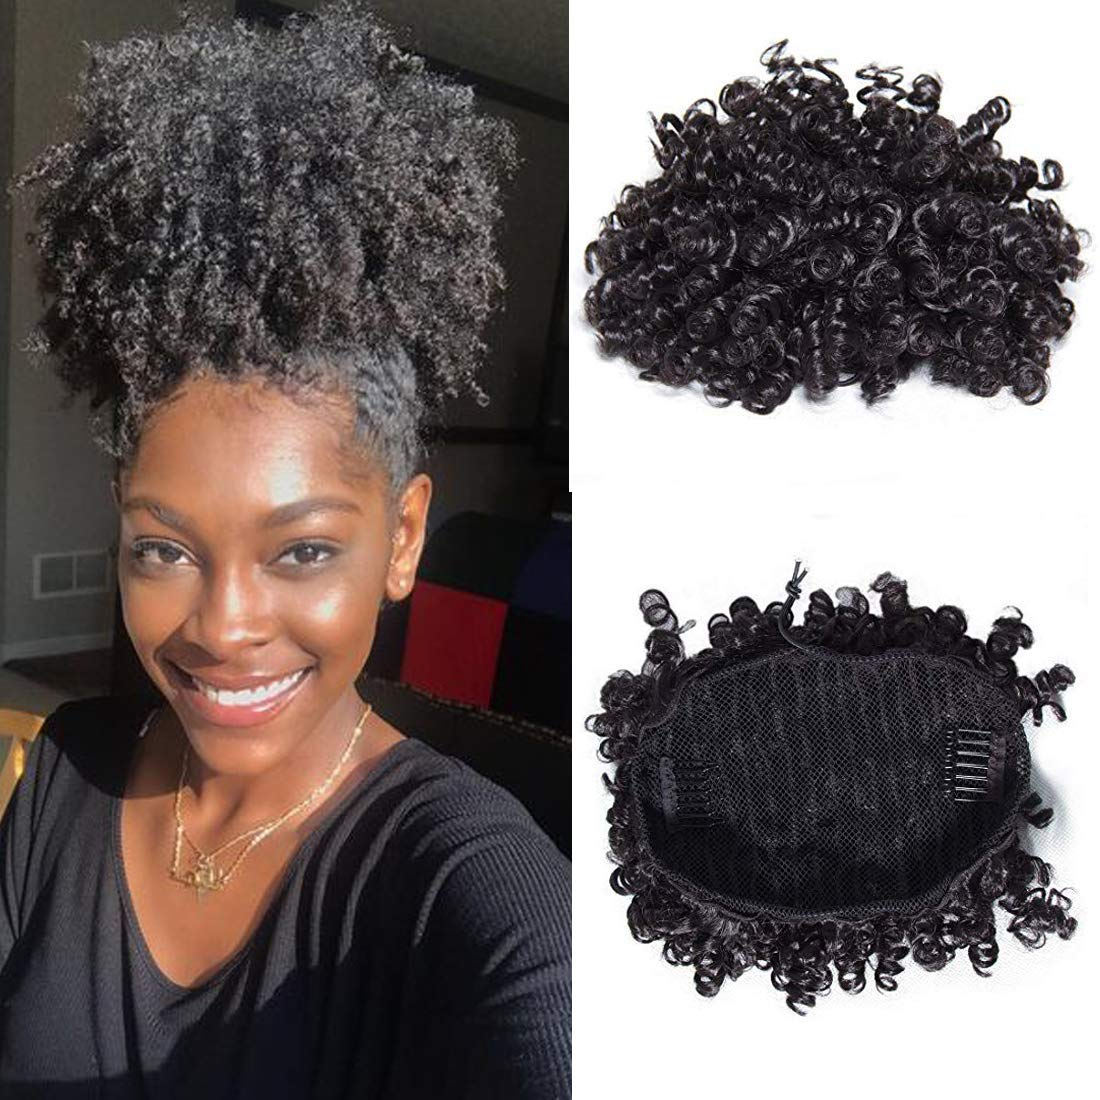 Julia Hair Afro Curly Human Hair Puff Drawstring Ponytail Hairpieces Kinky Curly Wrap Drawstring Bun Ponytails Hair Extensions for Women with Clips Natural Black Color (8 inch)